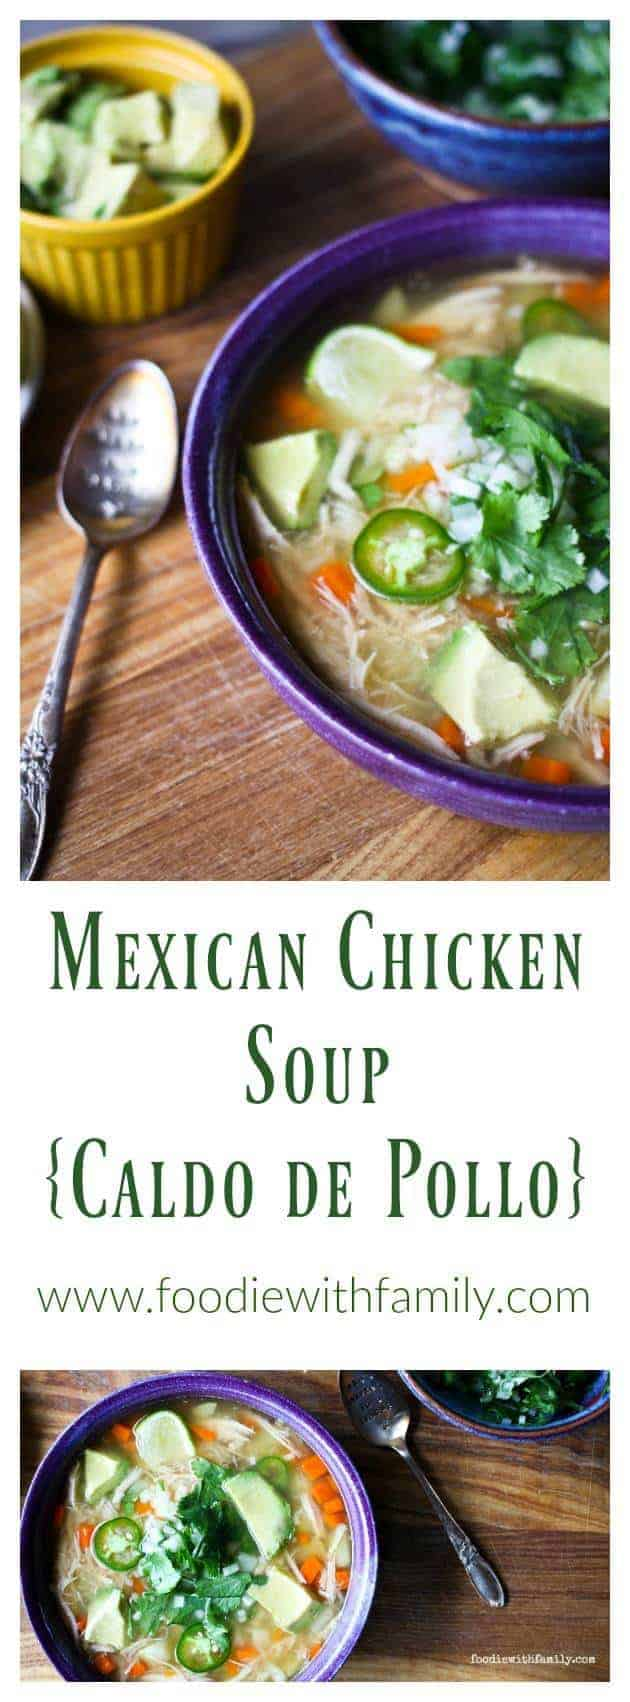 Mexican Chicken Soup Caldo de Pollo from foodiewithfamily.com